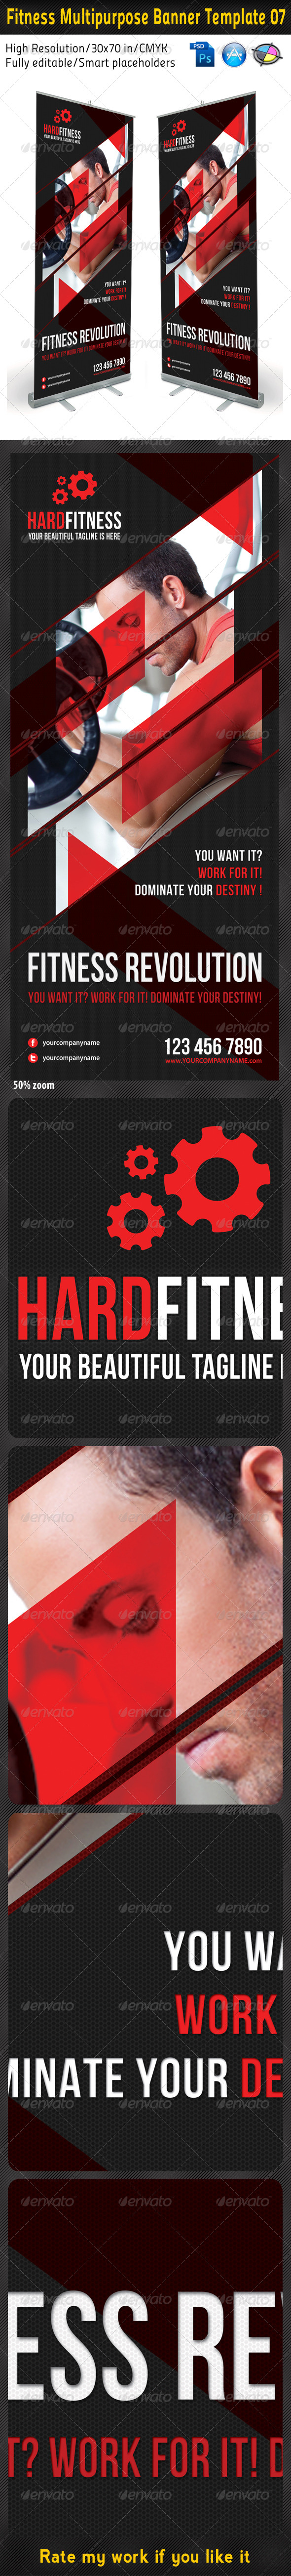 Fitness Multipurpose Banner Template 08 - Signage Print Templates